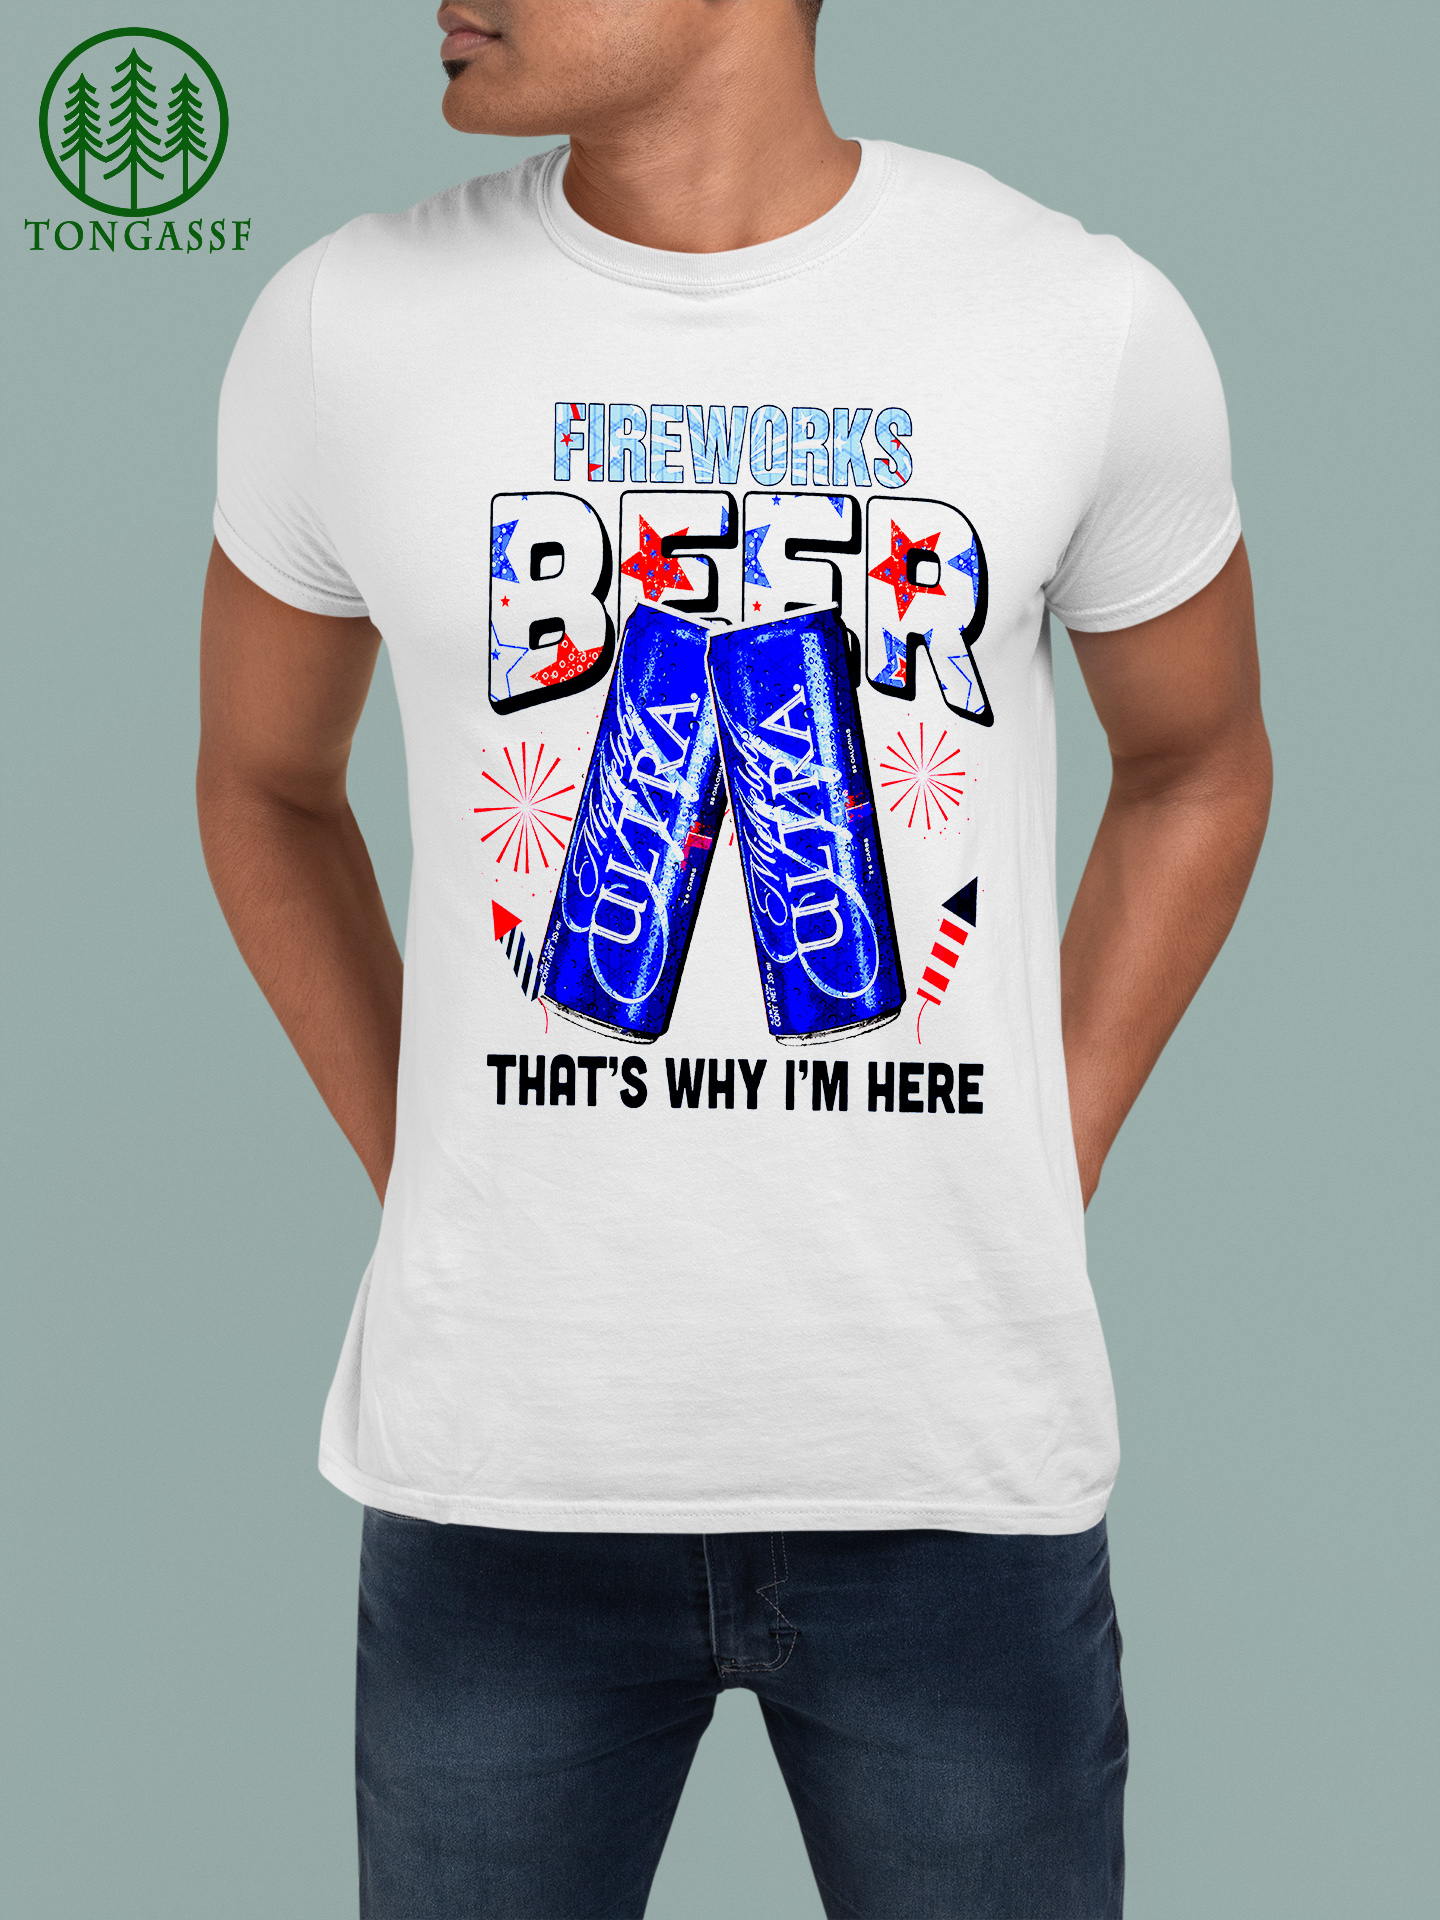 Michelob Ultra Fireworks beer thats why I am here shirt